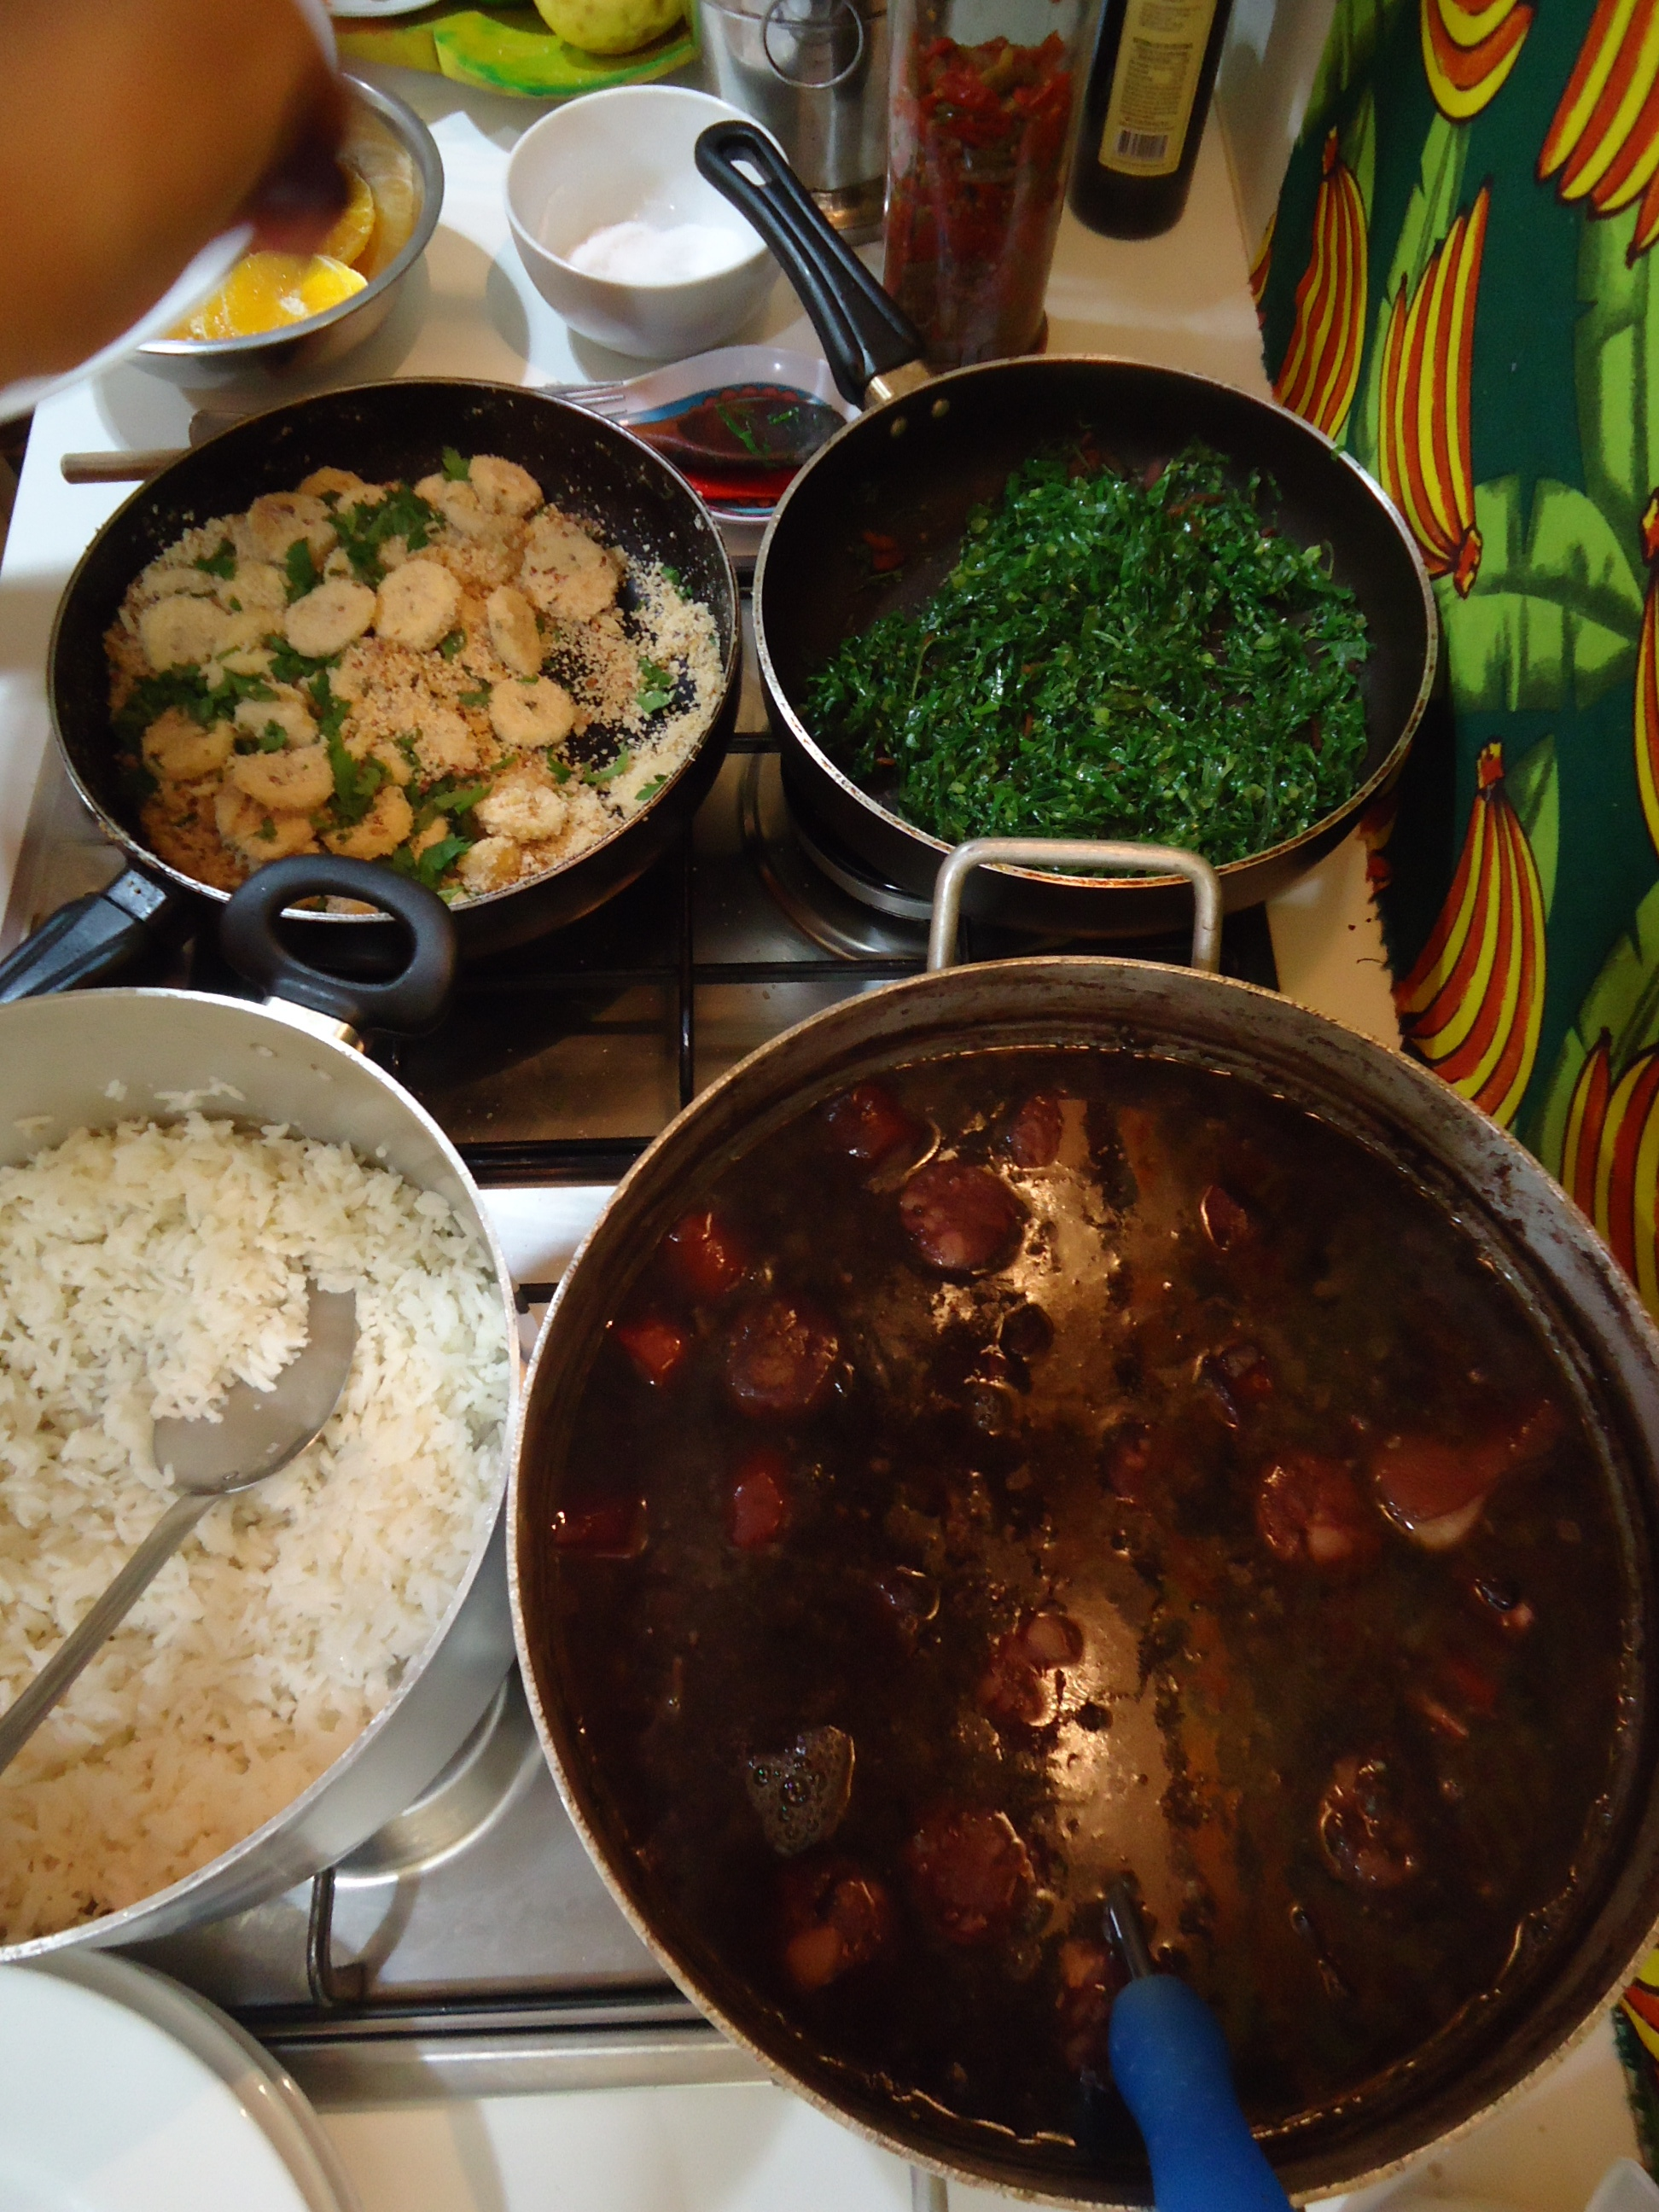 feijoada, farofa, rice and kale